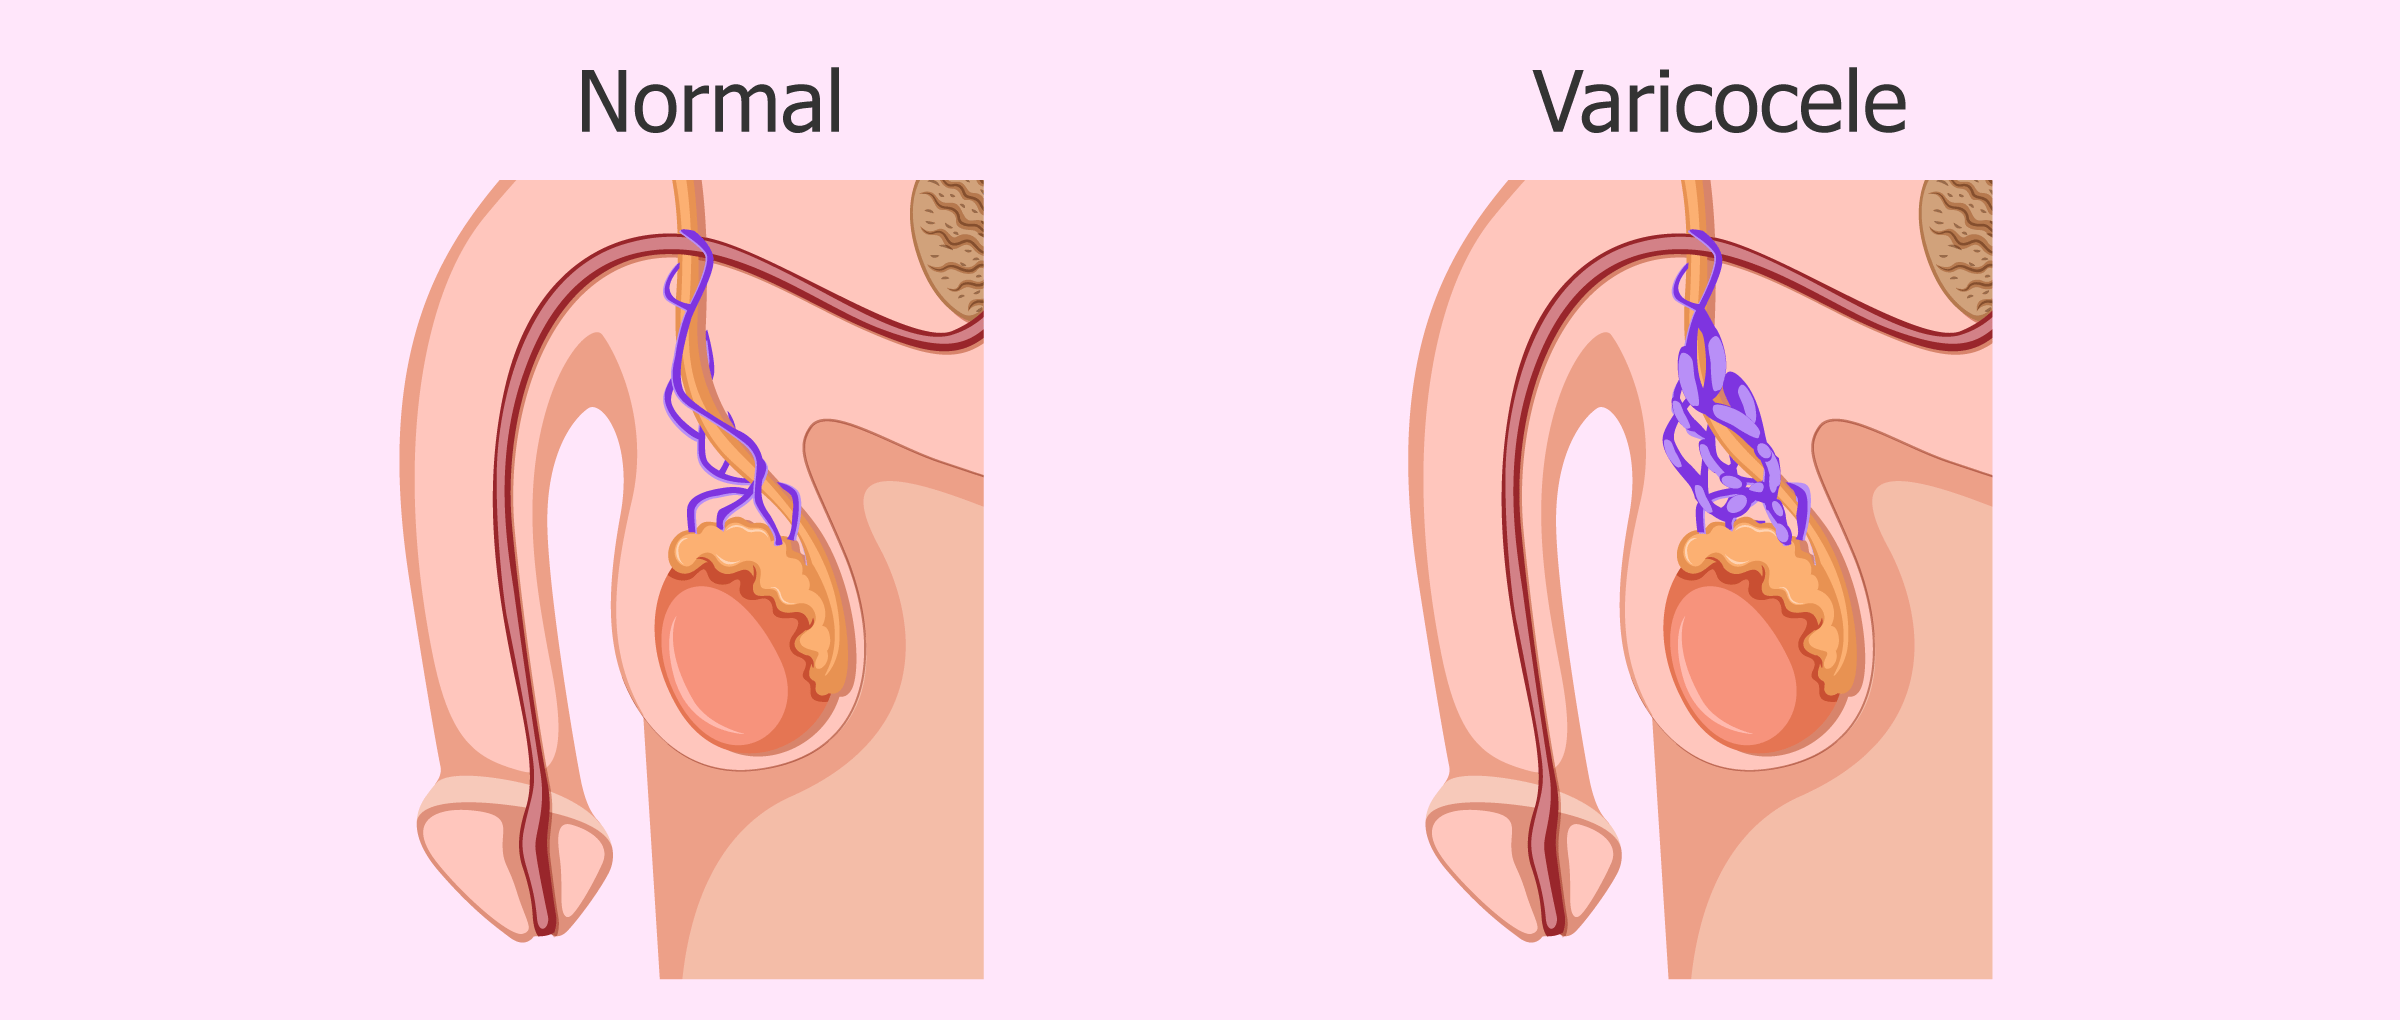 What is a Varicocele? - Causes, Symptoms & Treatment